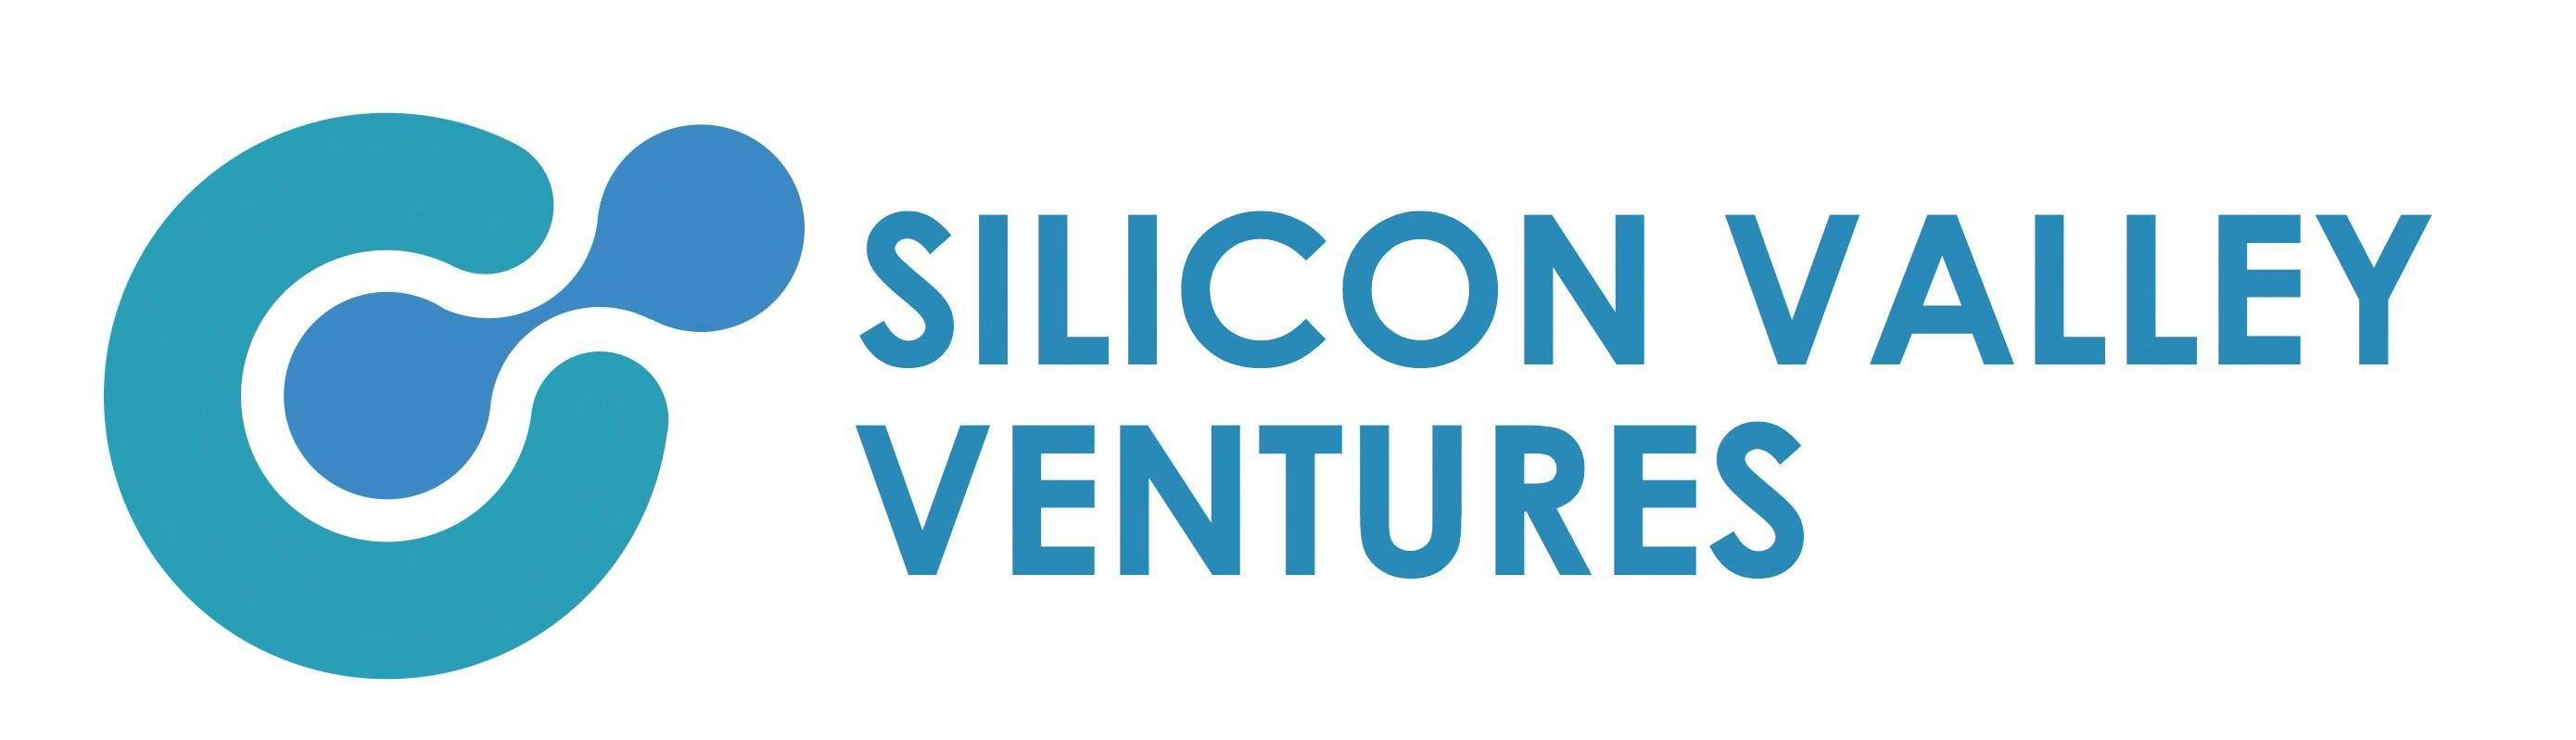 Silicon Valley Ventures